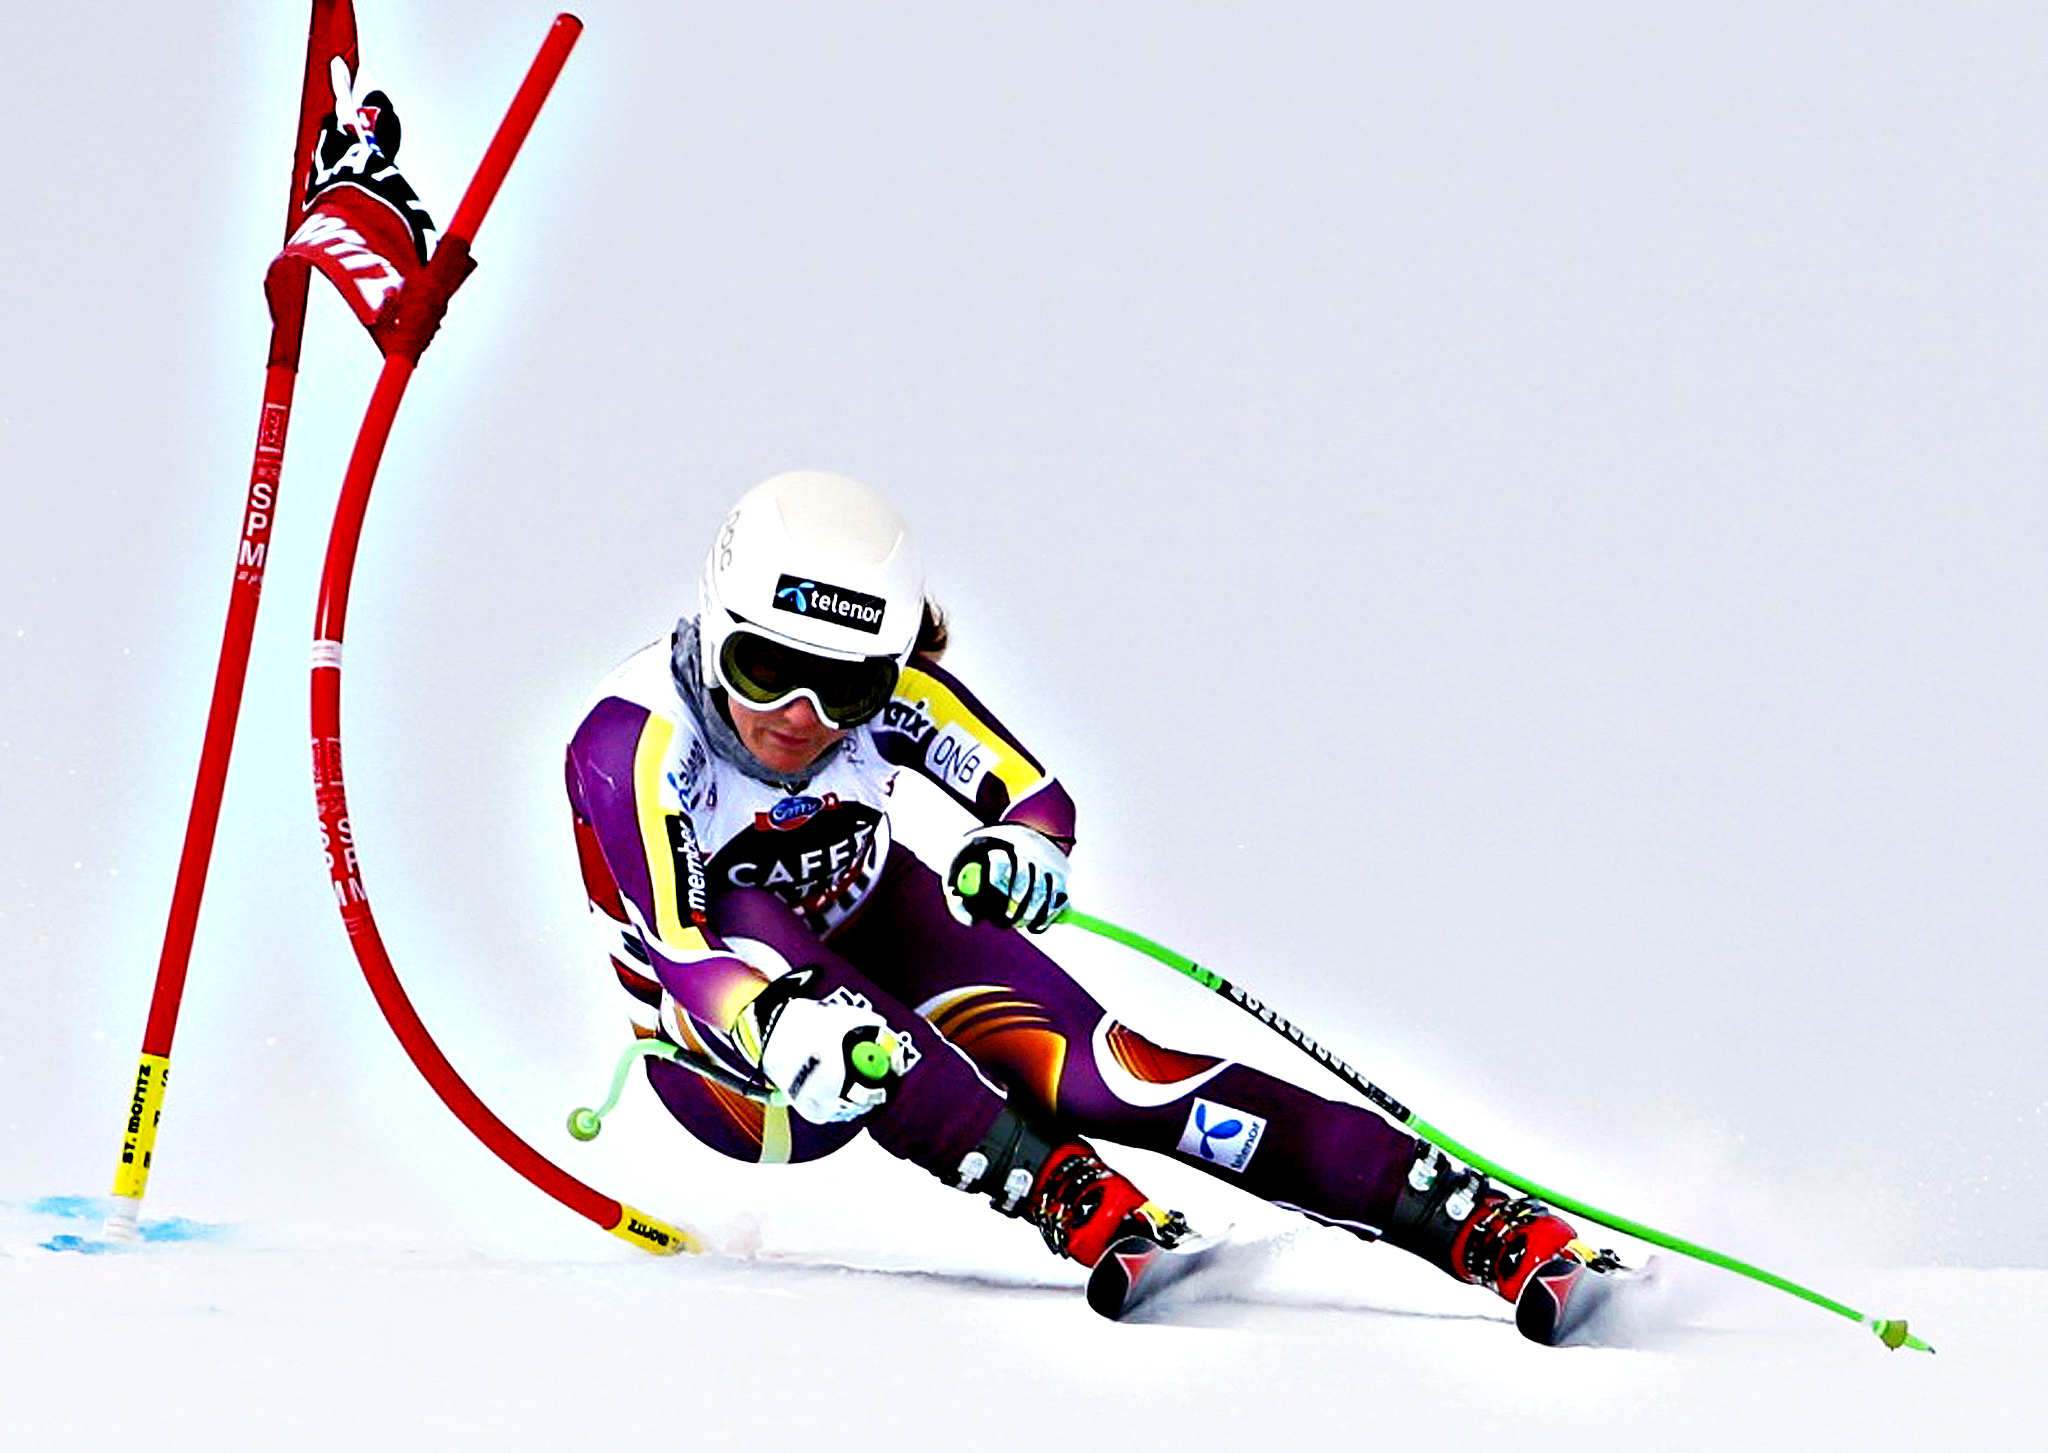 Lotte Smiseth Sejersted of Norway  clears a gate during the final training run for the women's Alpine Skiing World Cup downhill race in St Moritz January 23, 2015.